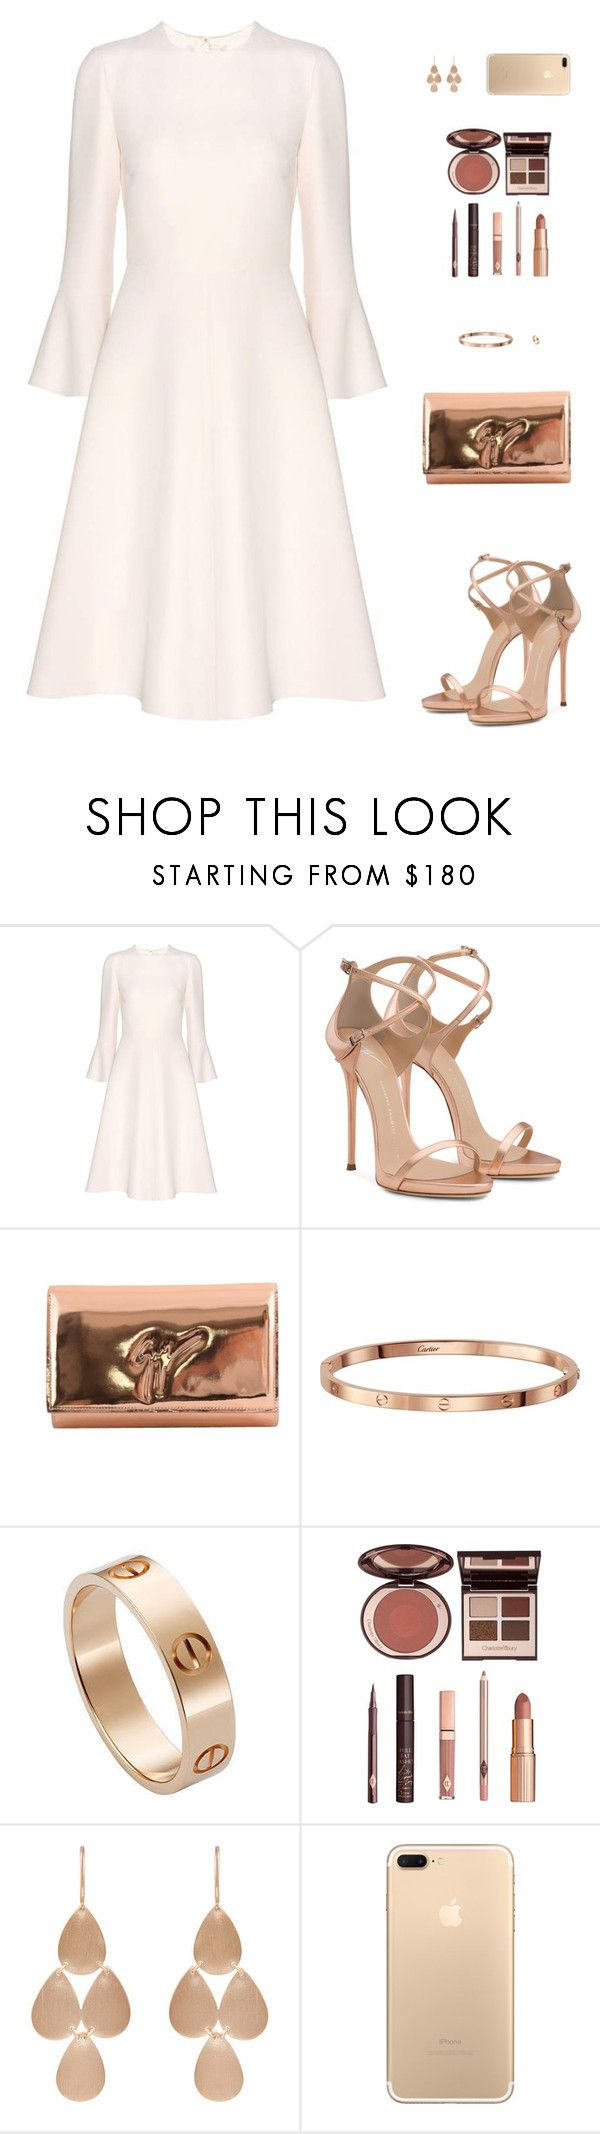 """Sin título #4583"" by mdmsb on Polyvore featuring moda, Valentino, Giuseppe Zanotti, Cartier, Charlotte Tilbury y Irene Neuwirth"